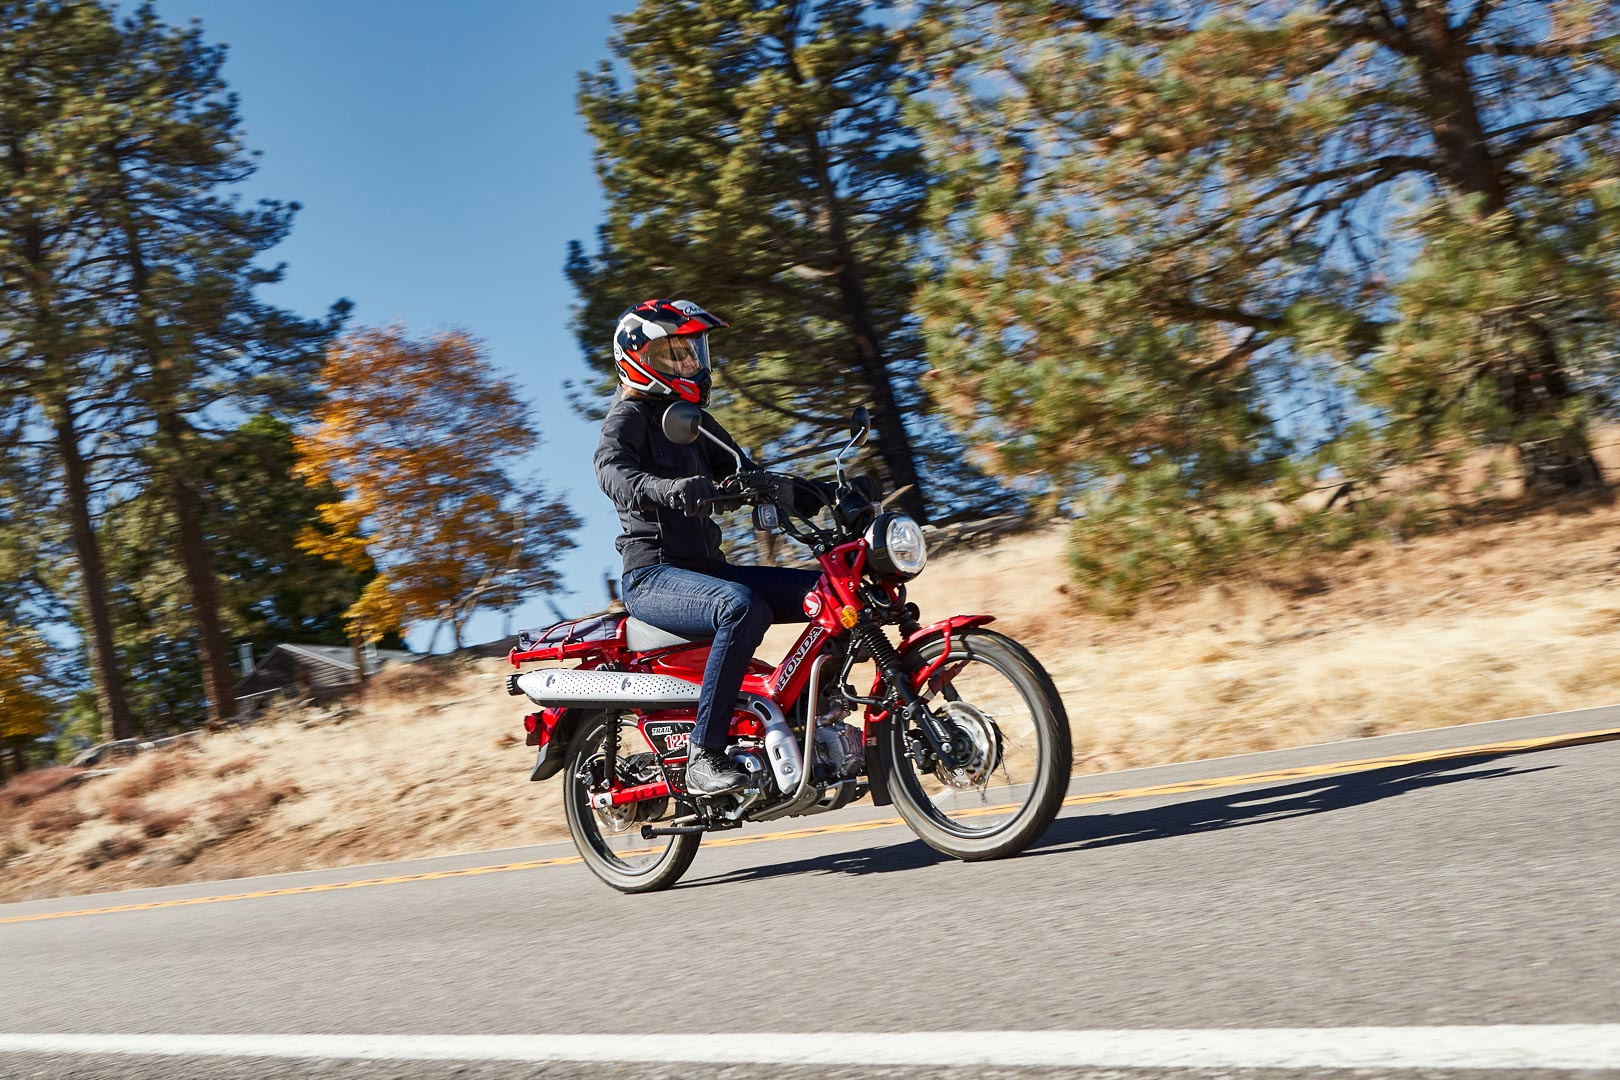 2021 Honda Trail 125 ABS Review: Adventure Motorcycle